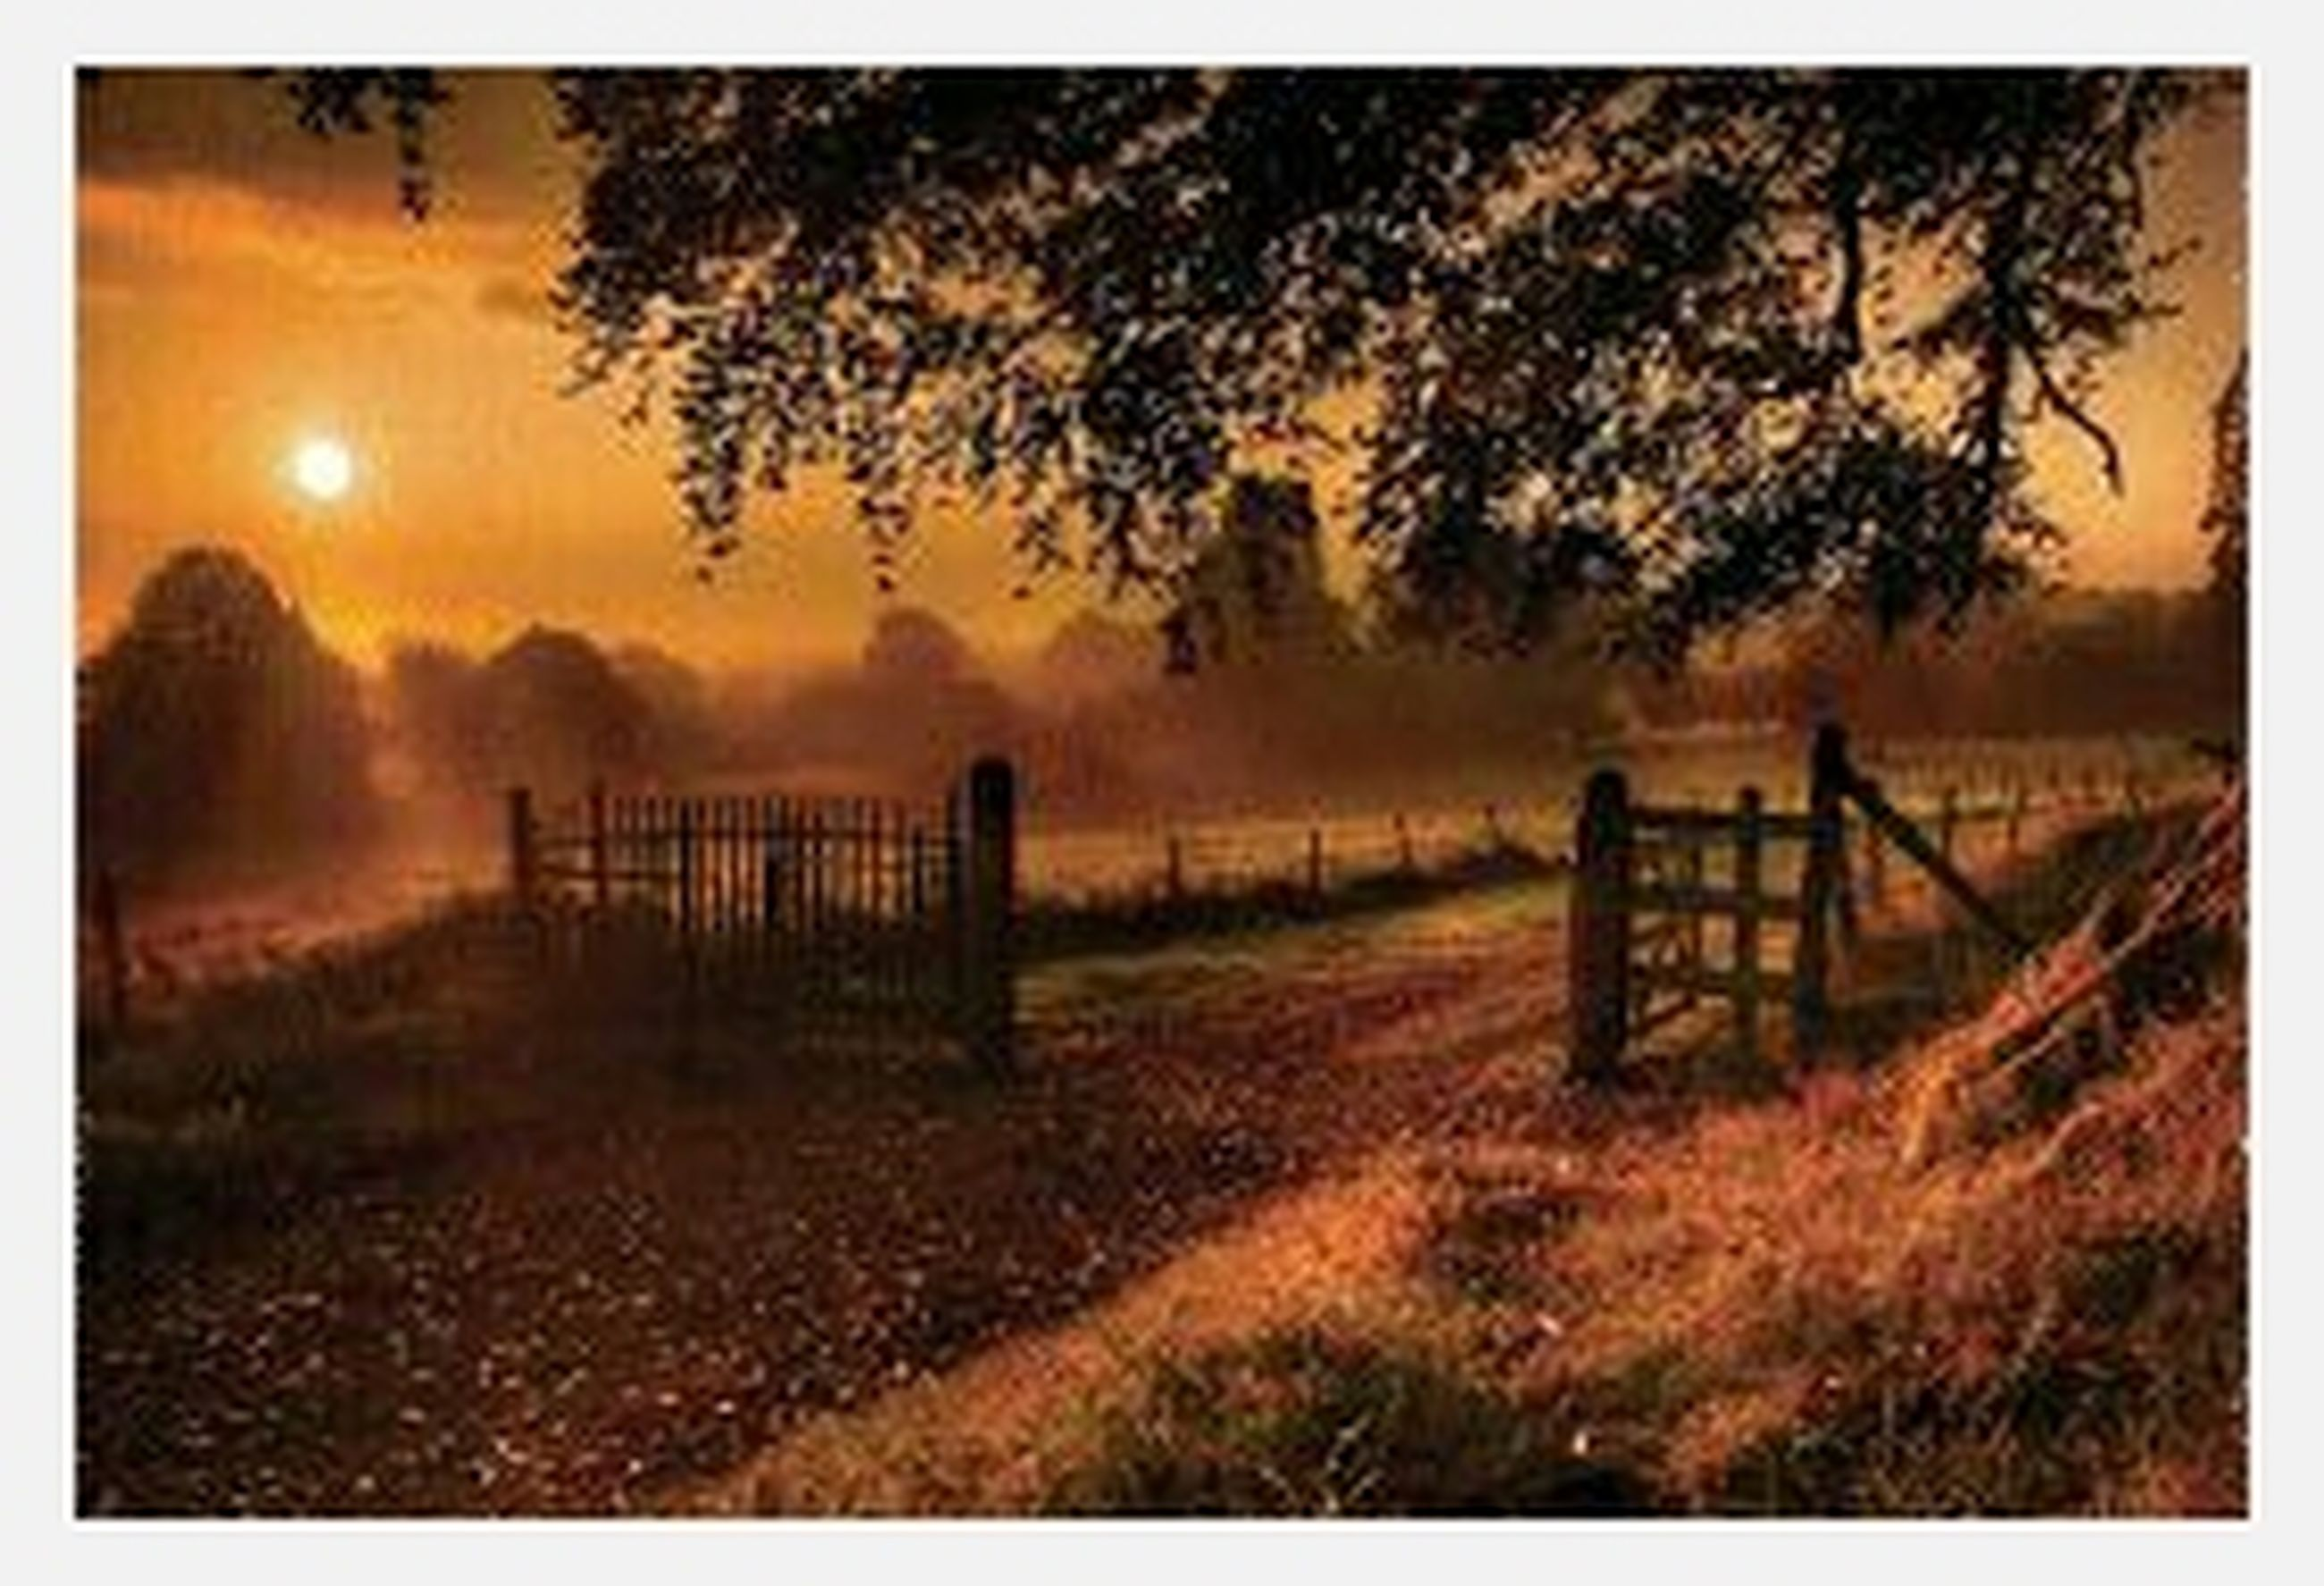 fence, tranquility, tranquil scene, sunset, field, scenics, sky, landscape, nature, beauty in nature, grass, transfer print, auto post production filter, wood - material, protection, safety, tree, cloud - sky, idyllic, rural scene